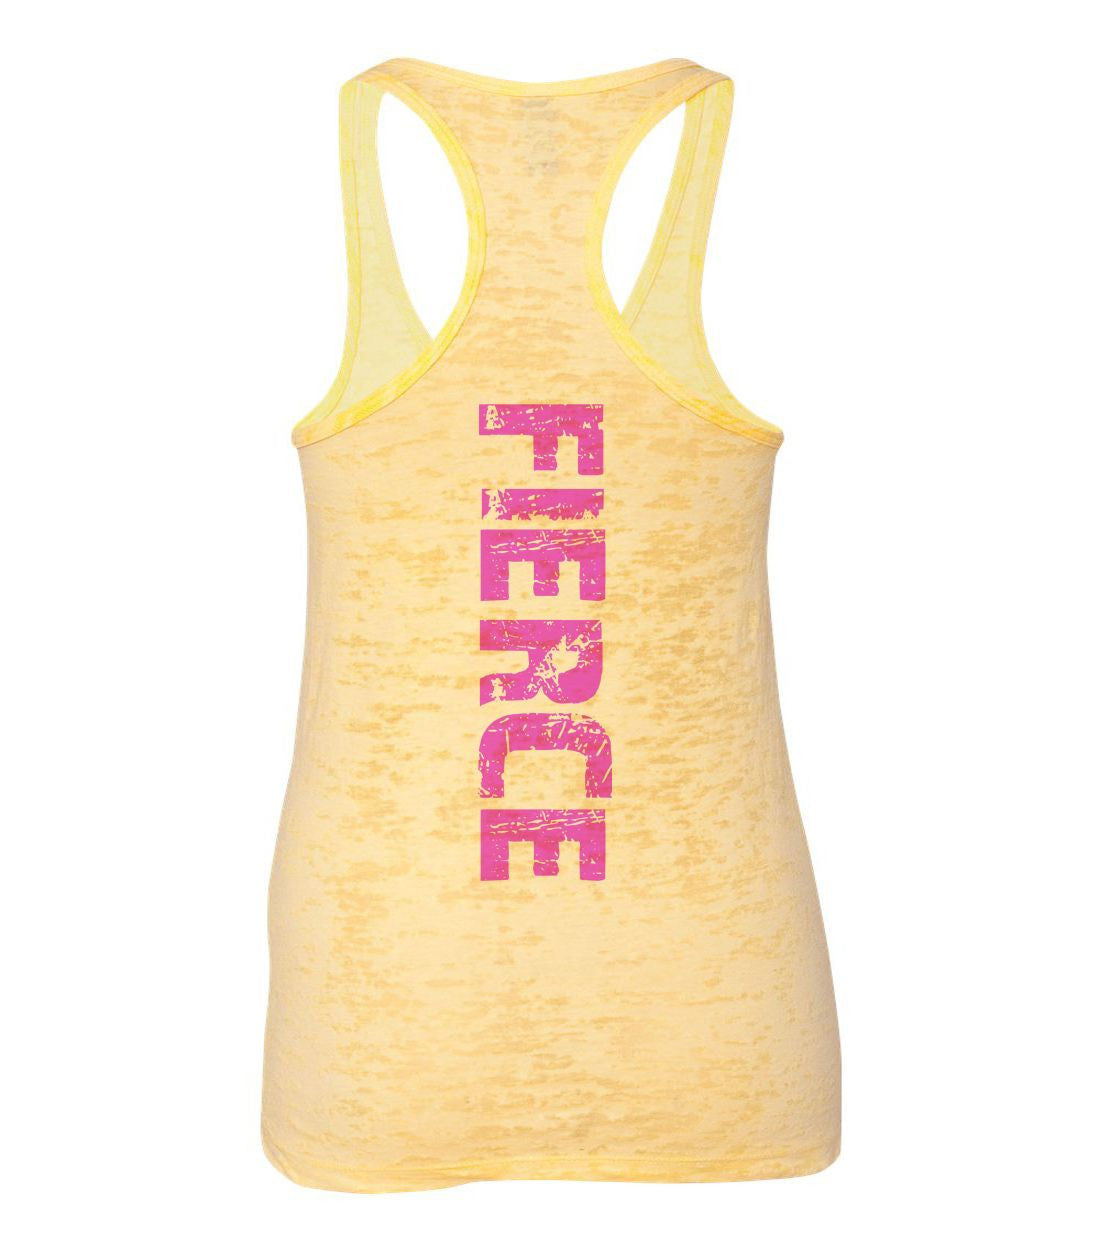 Fierce Burnout Tank Top By BurnoutTankTops.com - 775 - Funny Shirts Tank Tops Burnouts and Triblends  - 4